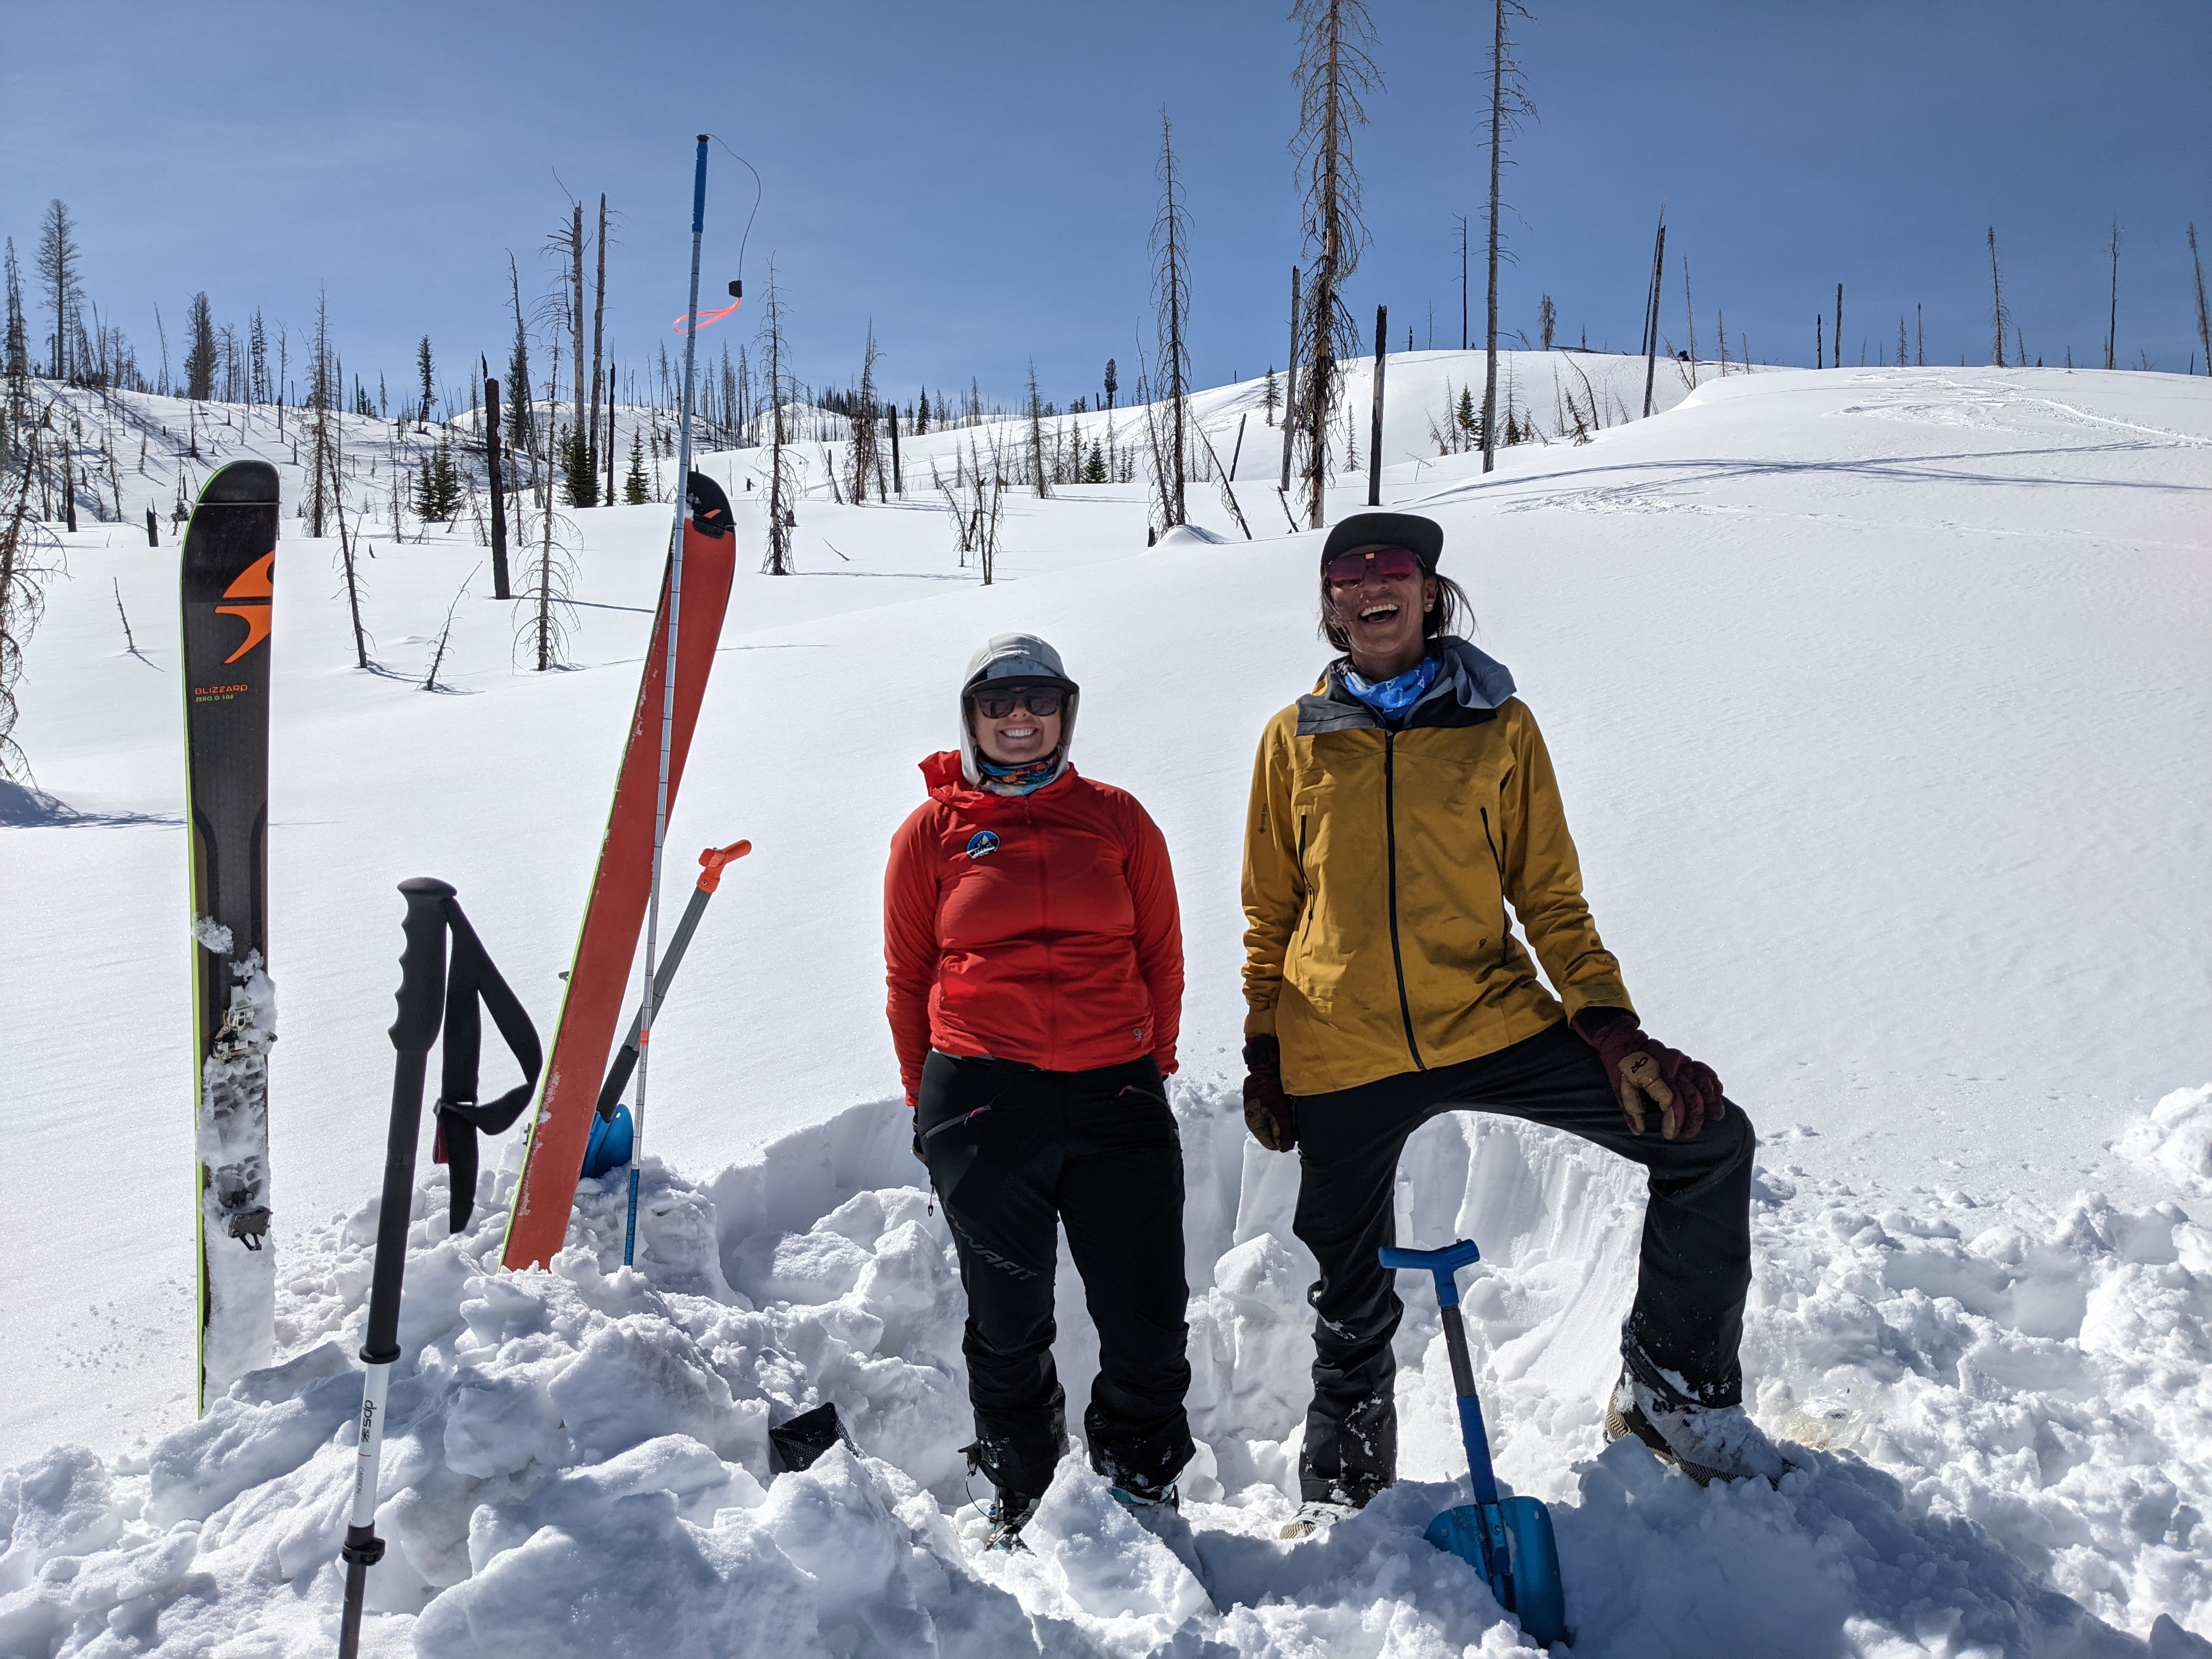 Dani Reyes-Acosta and Betsy Manero dig into creating equity in the backcountry